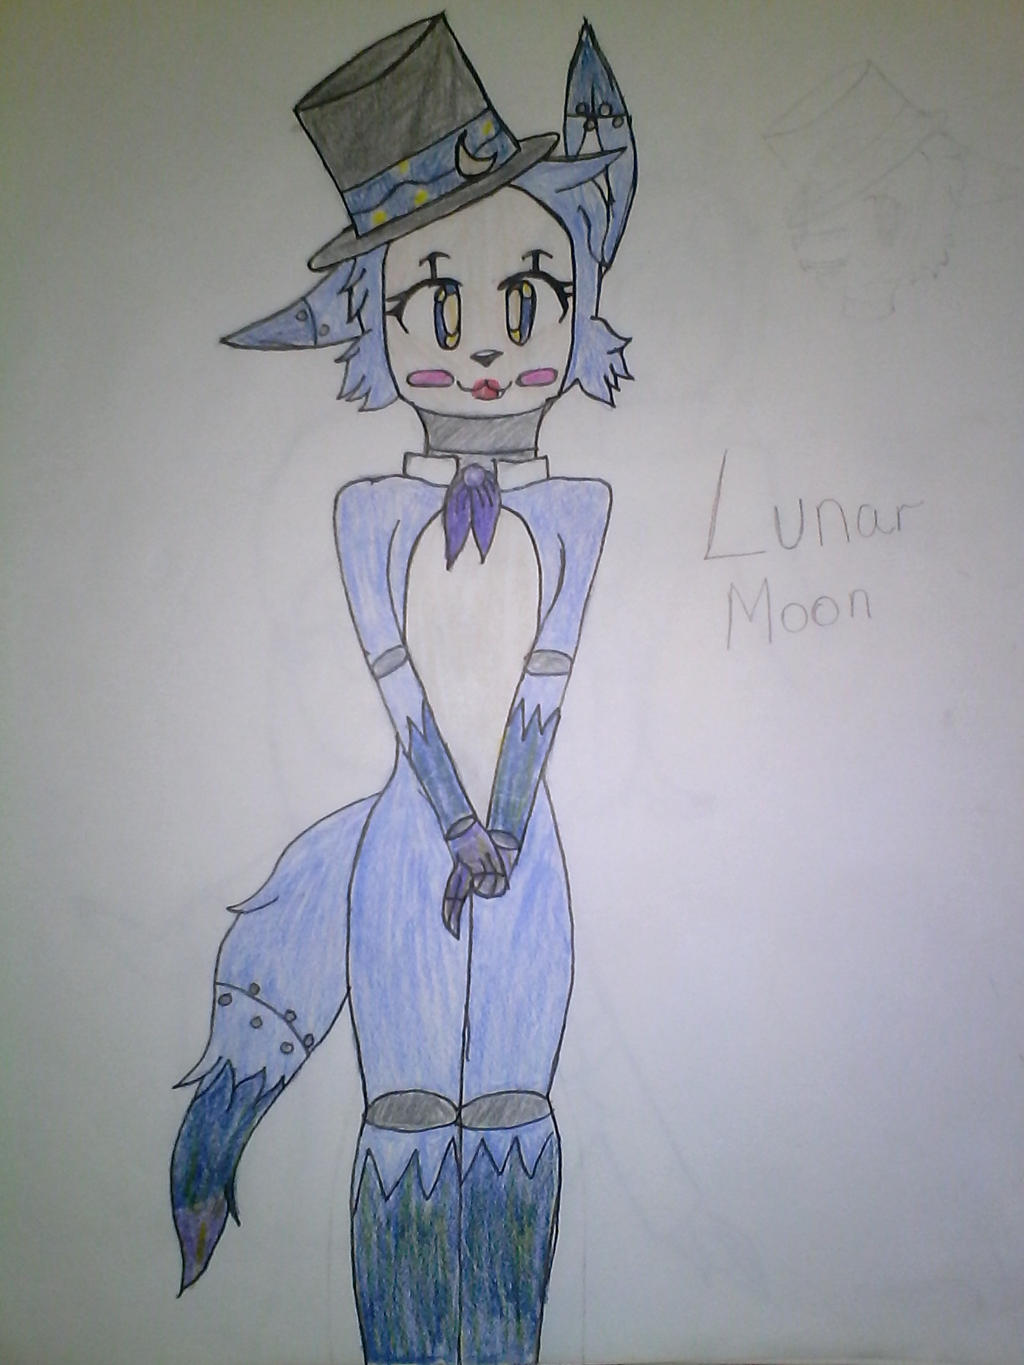 Lunar moon (Ain't she adorable) by Illiterate-Swine